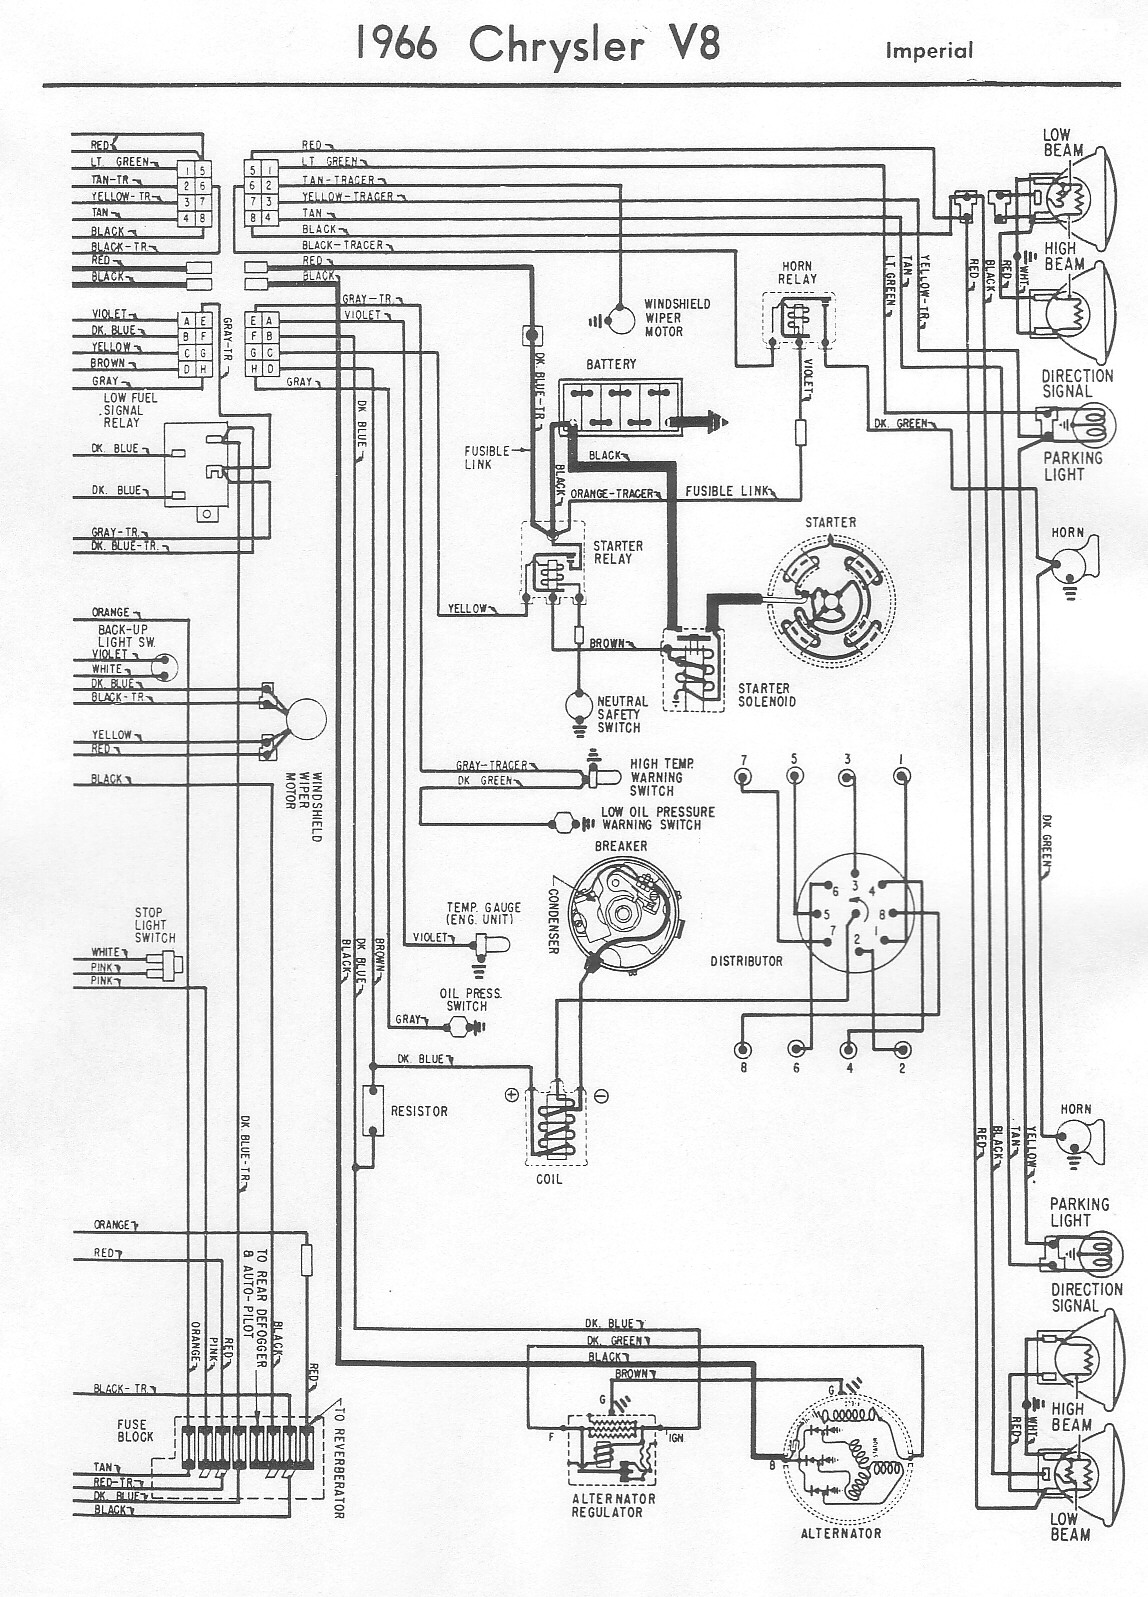 300c 6 1 Hemi Wiring Diagram Guide And Troubleshooting Of V8 Engine Chrysler 300 Get Free Image About Audi R8 Horsepower